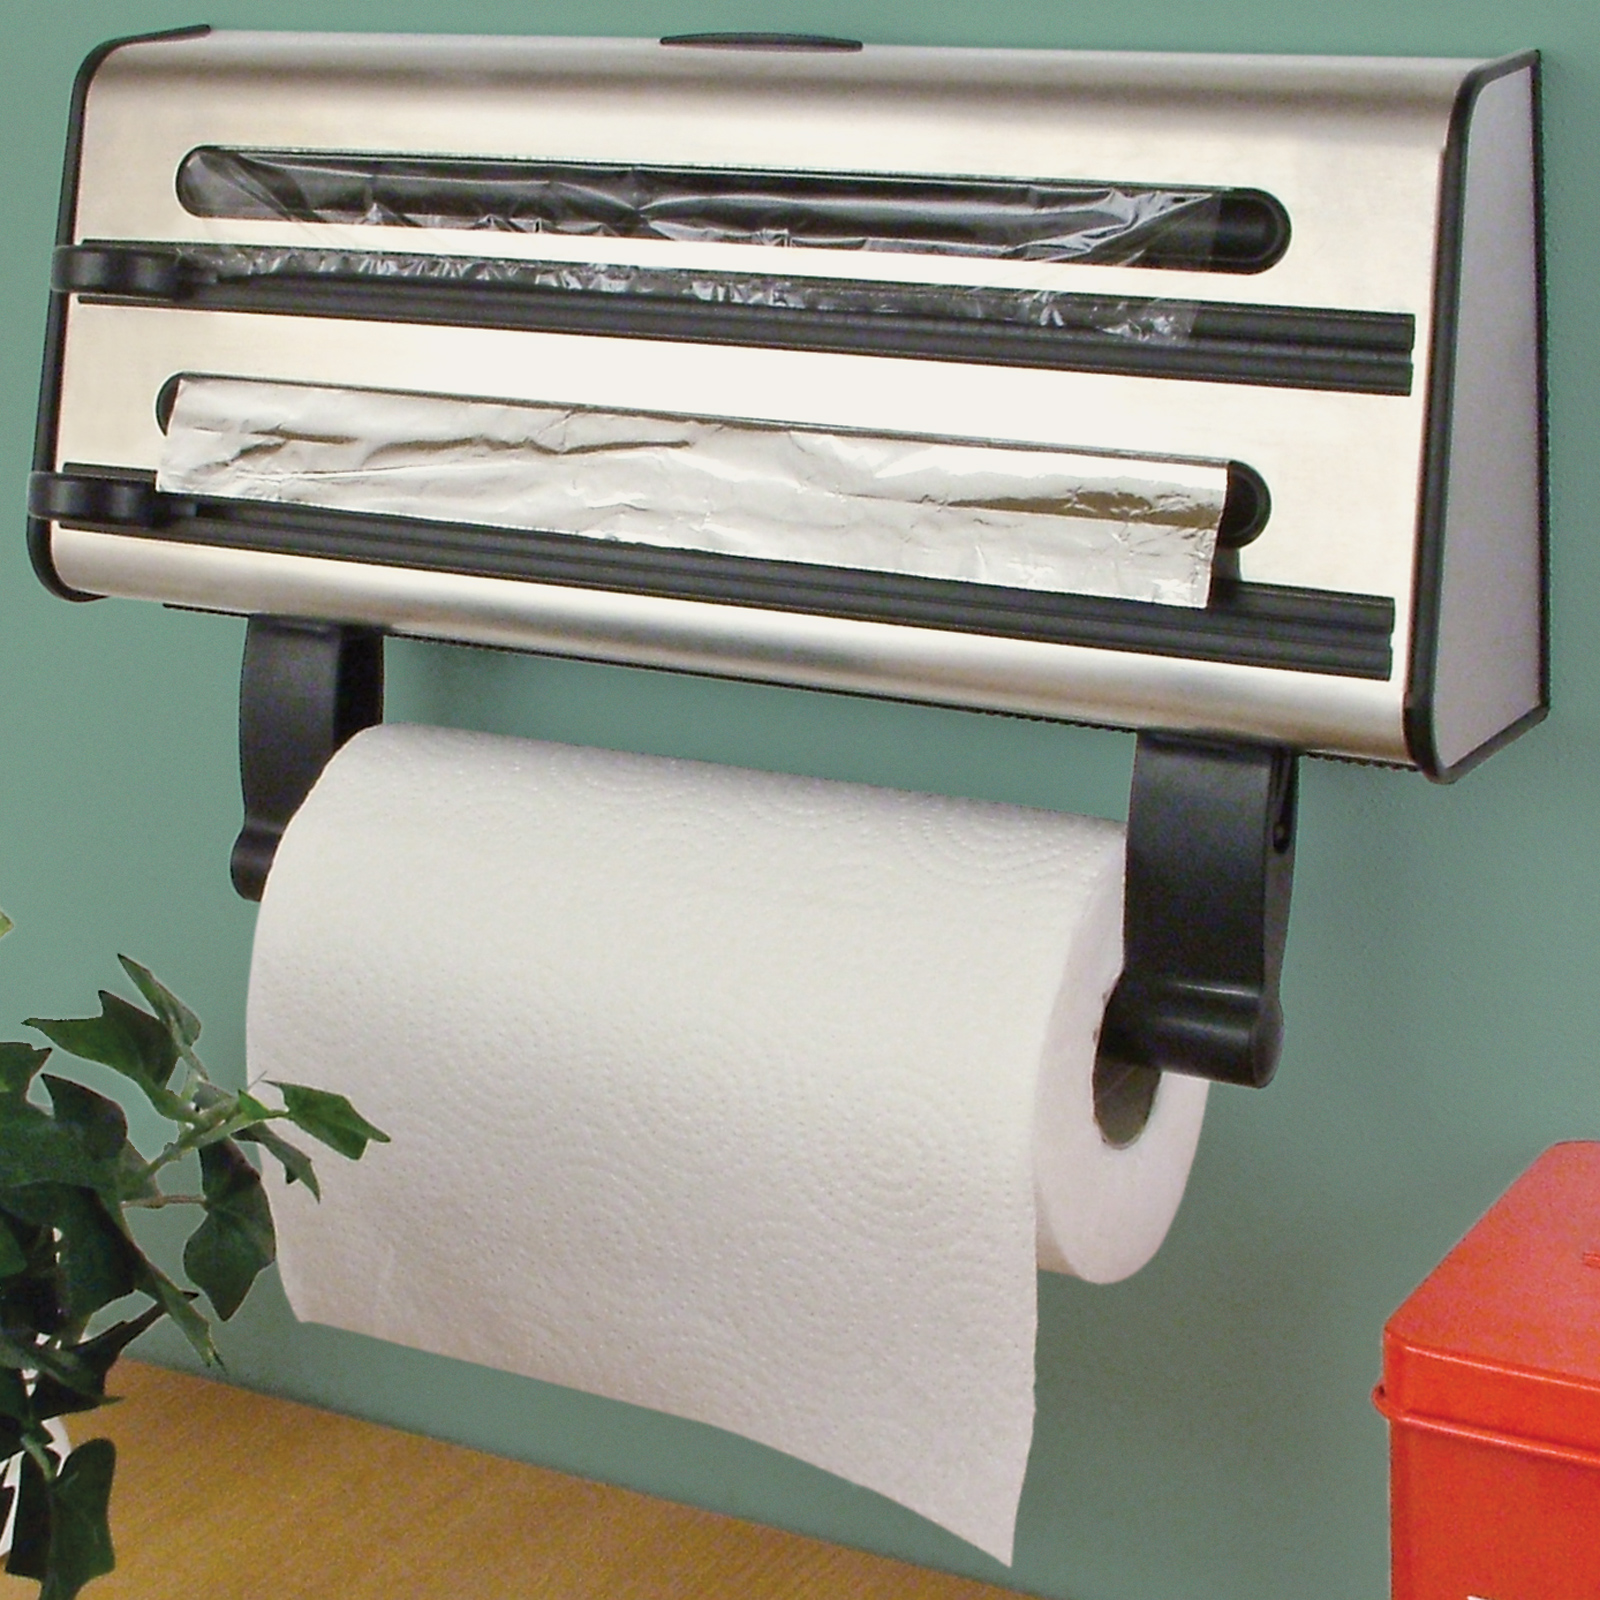 Magnetic Kitchen Roll Holder Uk